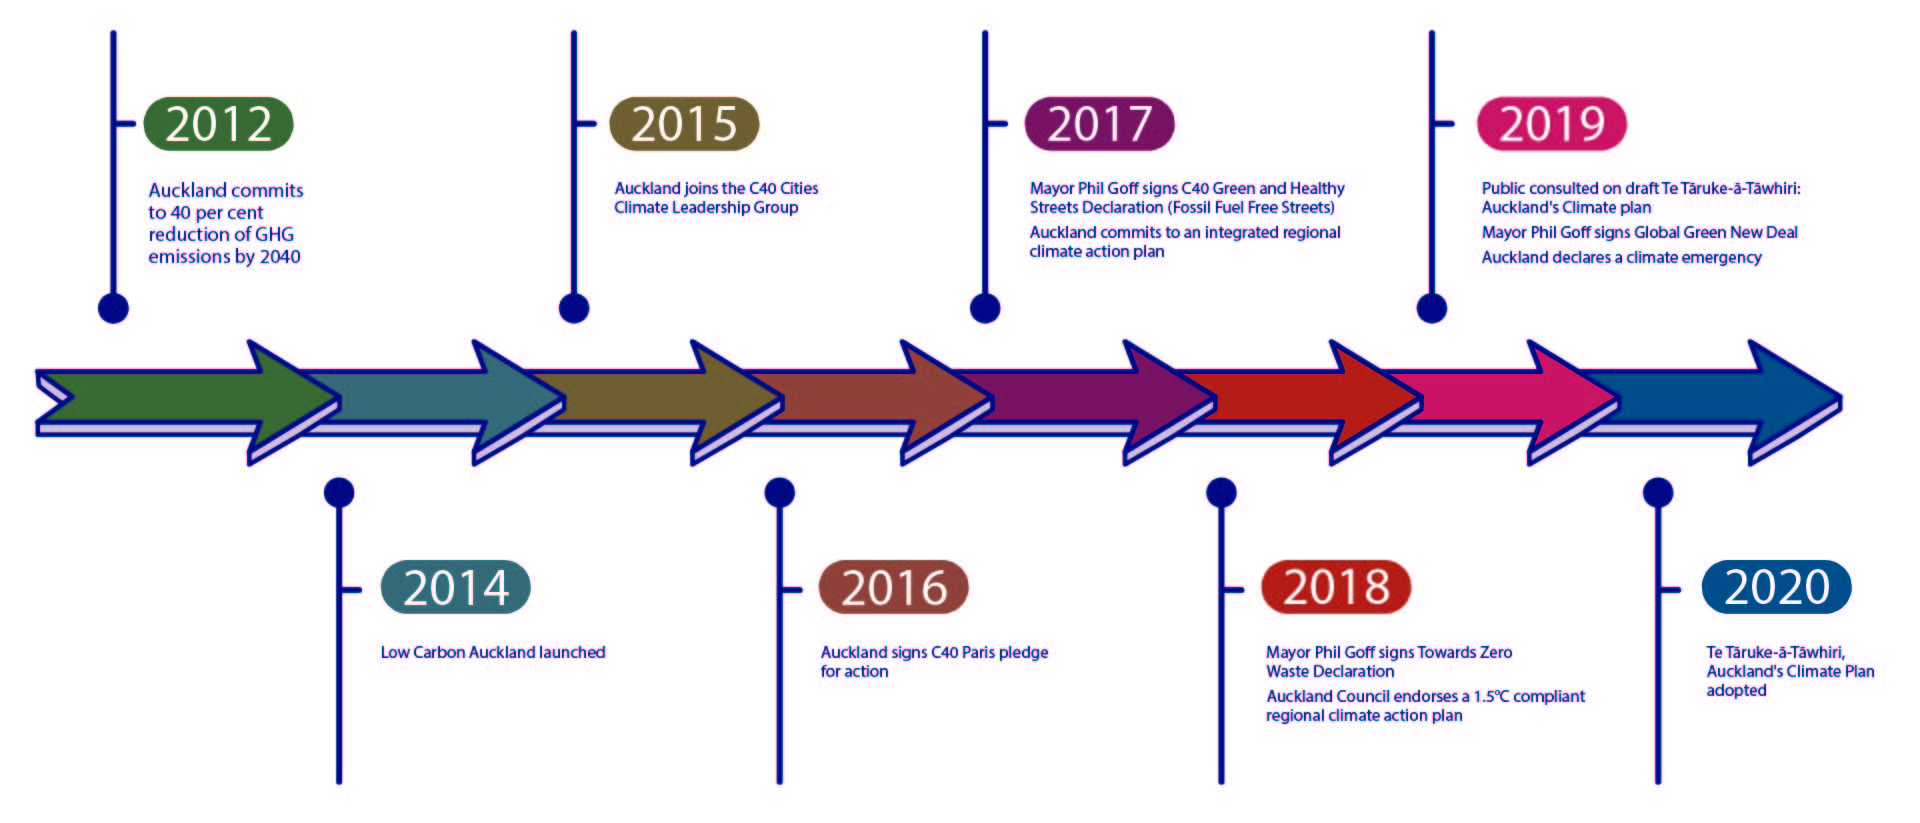 A timeline of Auckland commitments on climate change from 2012 to 2020.